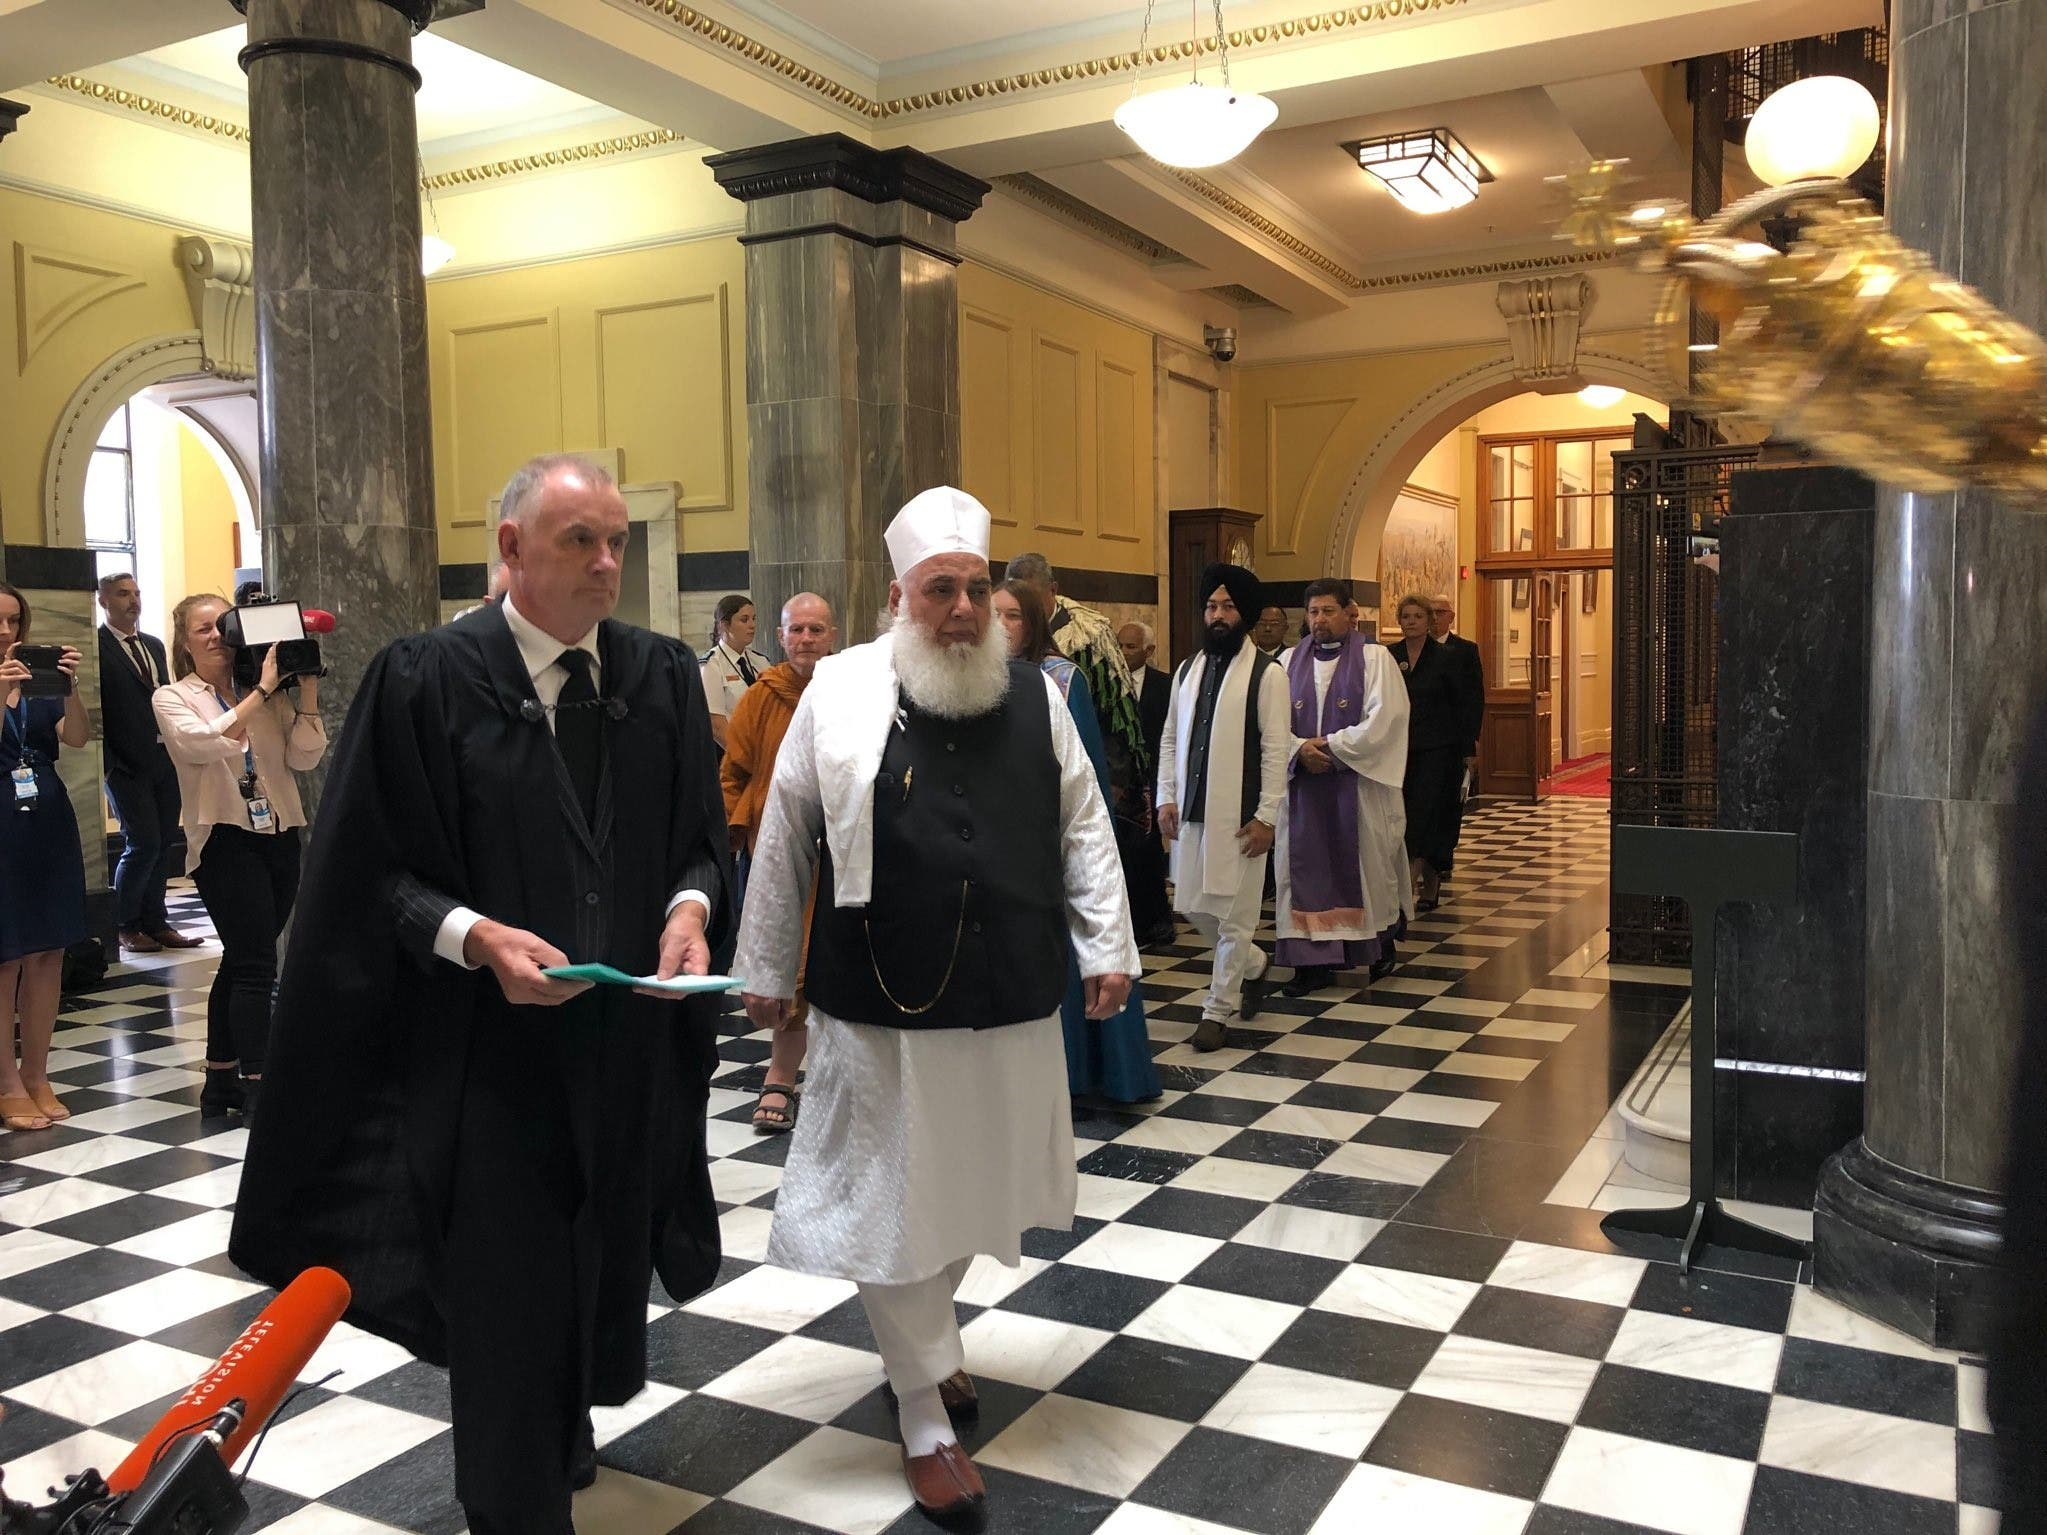 New Zealand Speaker of the House of Representatives Trevor Mallard walks with Imam Imam Nizam ul haq Thanvi